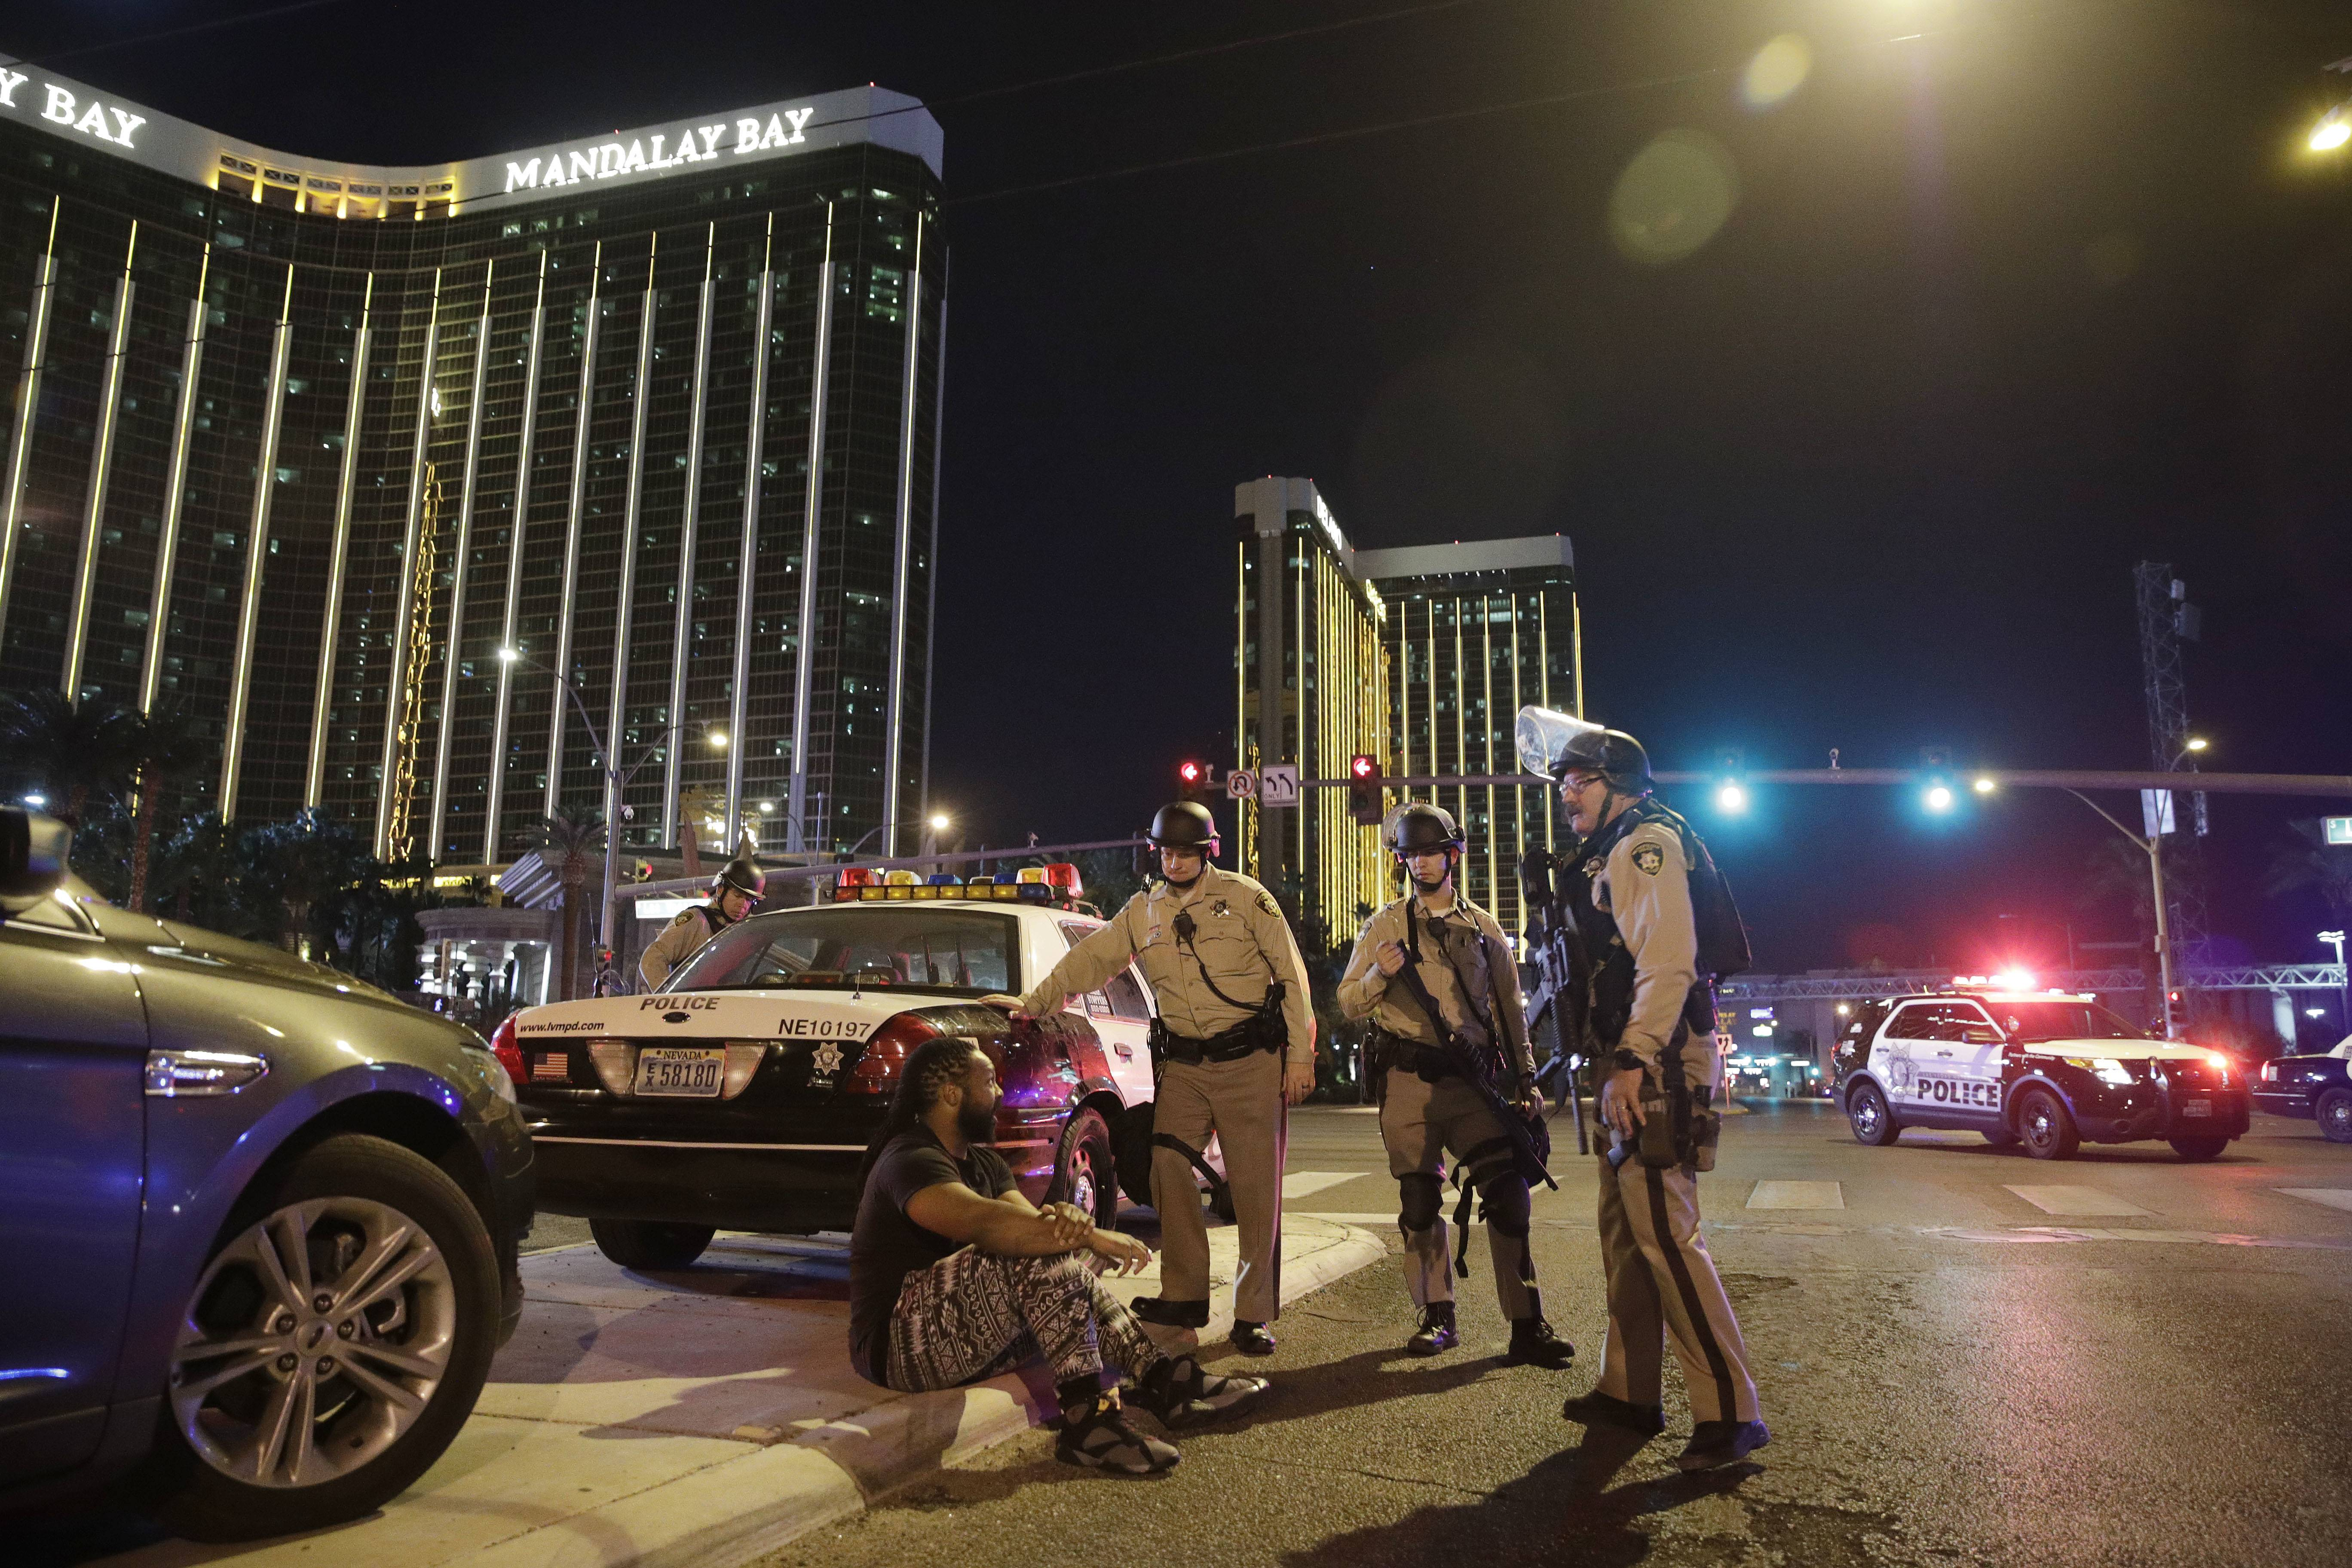 Police officers stand at the scene of a shooting near the Mandalay Bay resort and casino on the Las Vegas Strip, Sunday, Oct. 1, 2017, in Las Vegas. Multiple victims were being transported to hospitals after a shooting late Sunday at a music festival on the Las Vegas Strip.